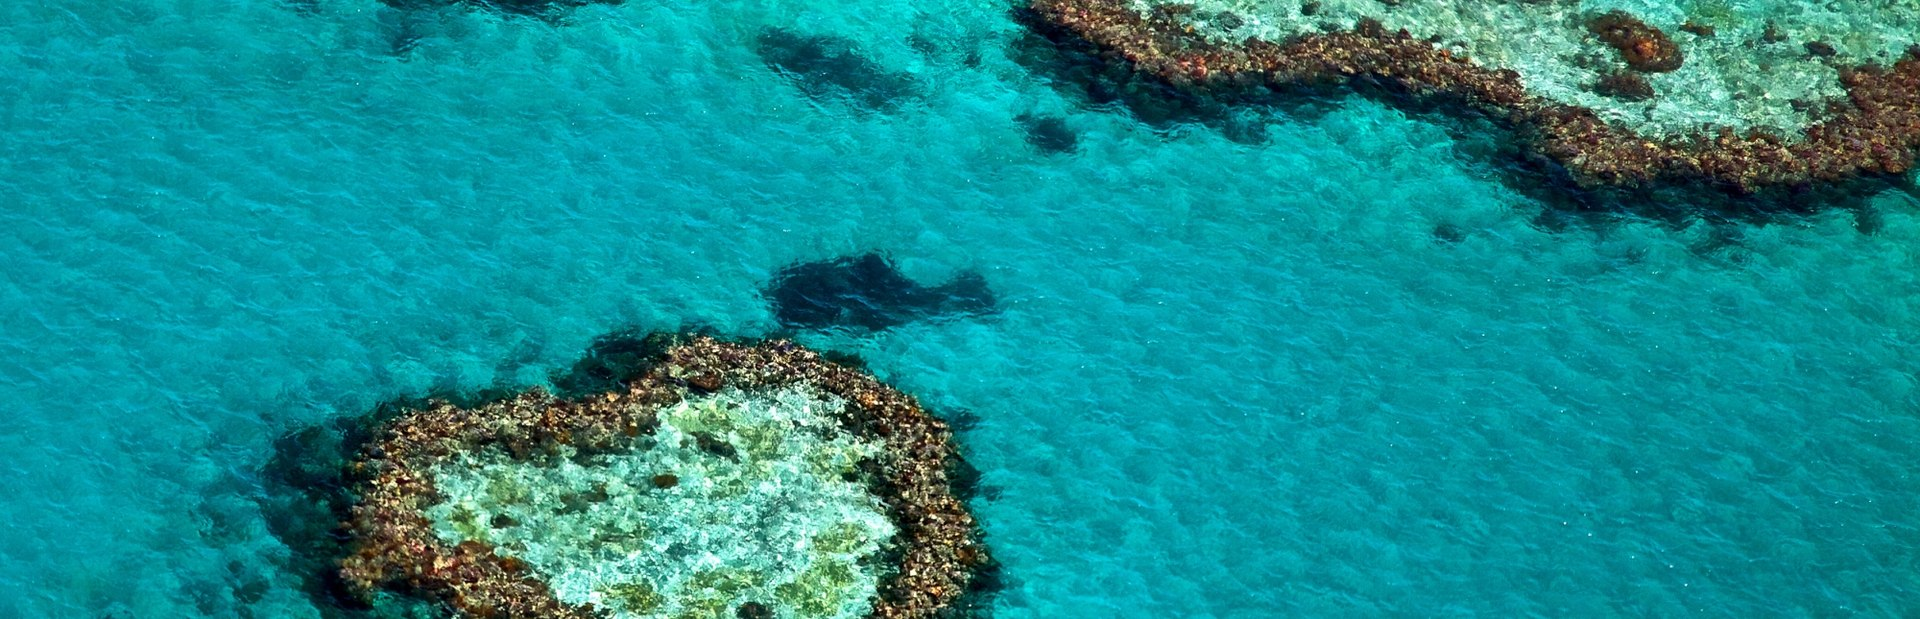 Great Barrier Reef photo tour